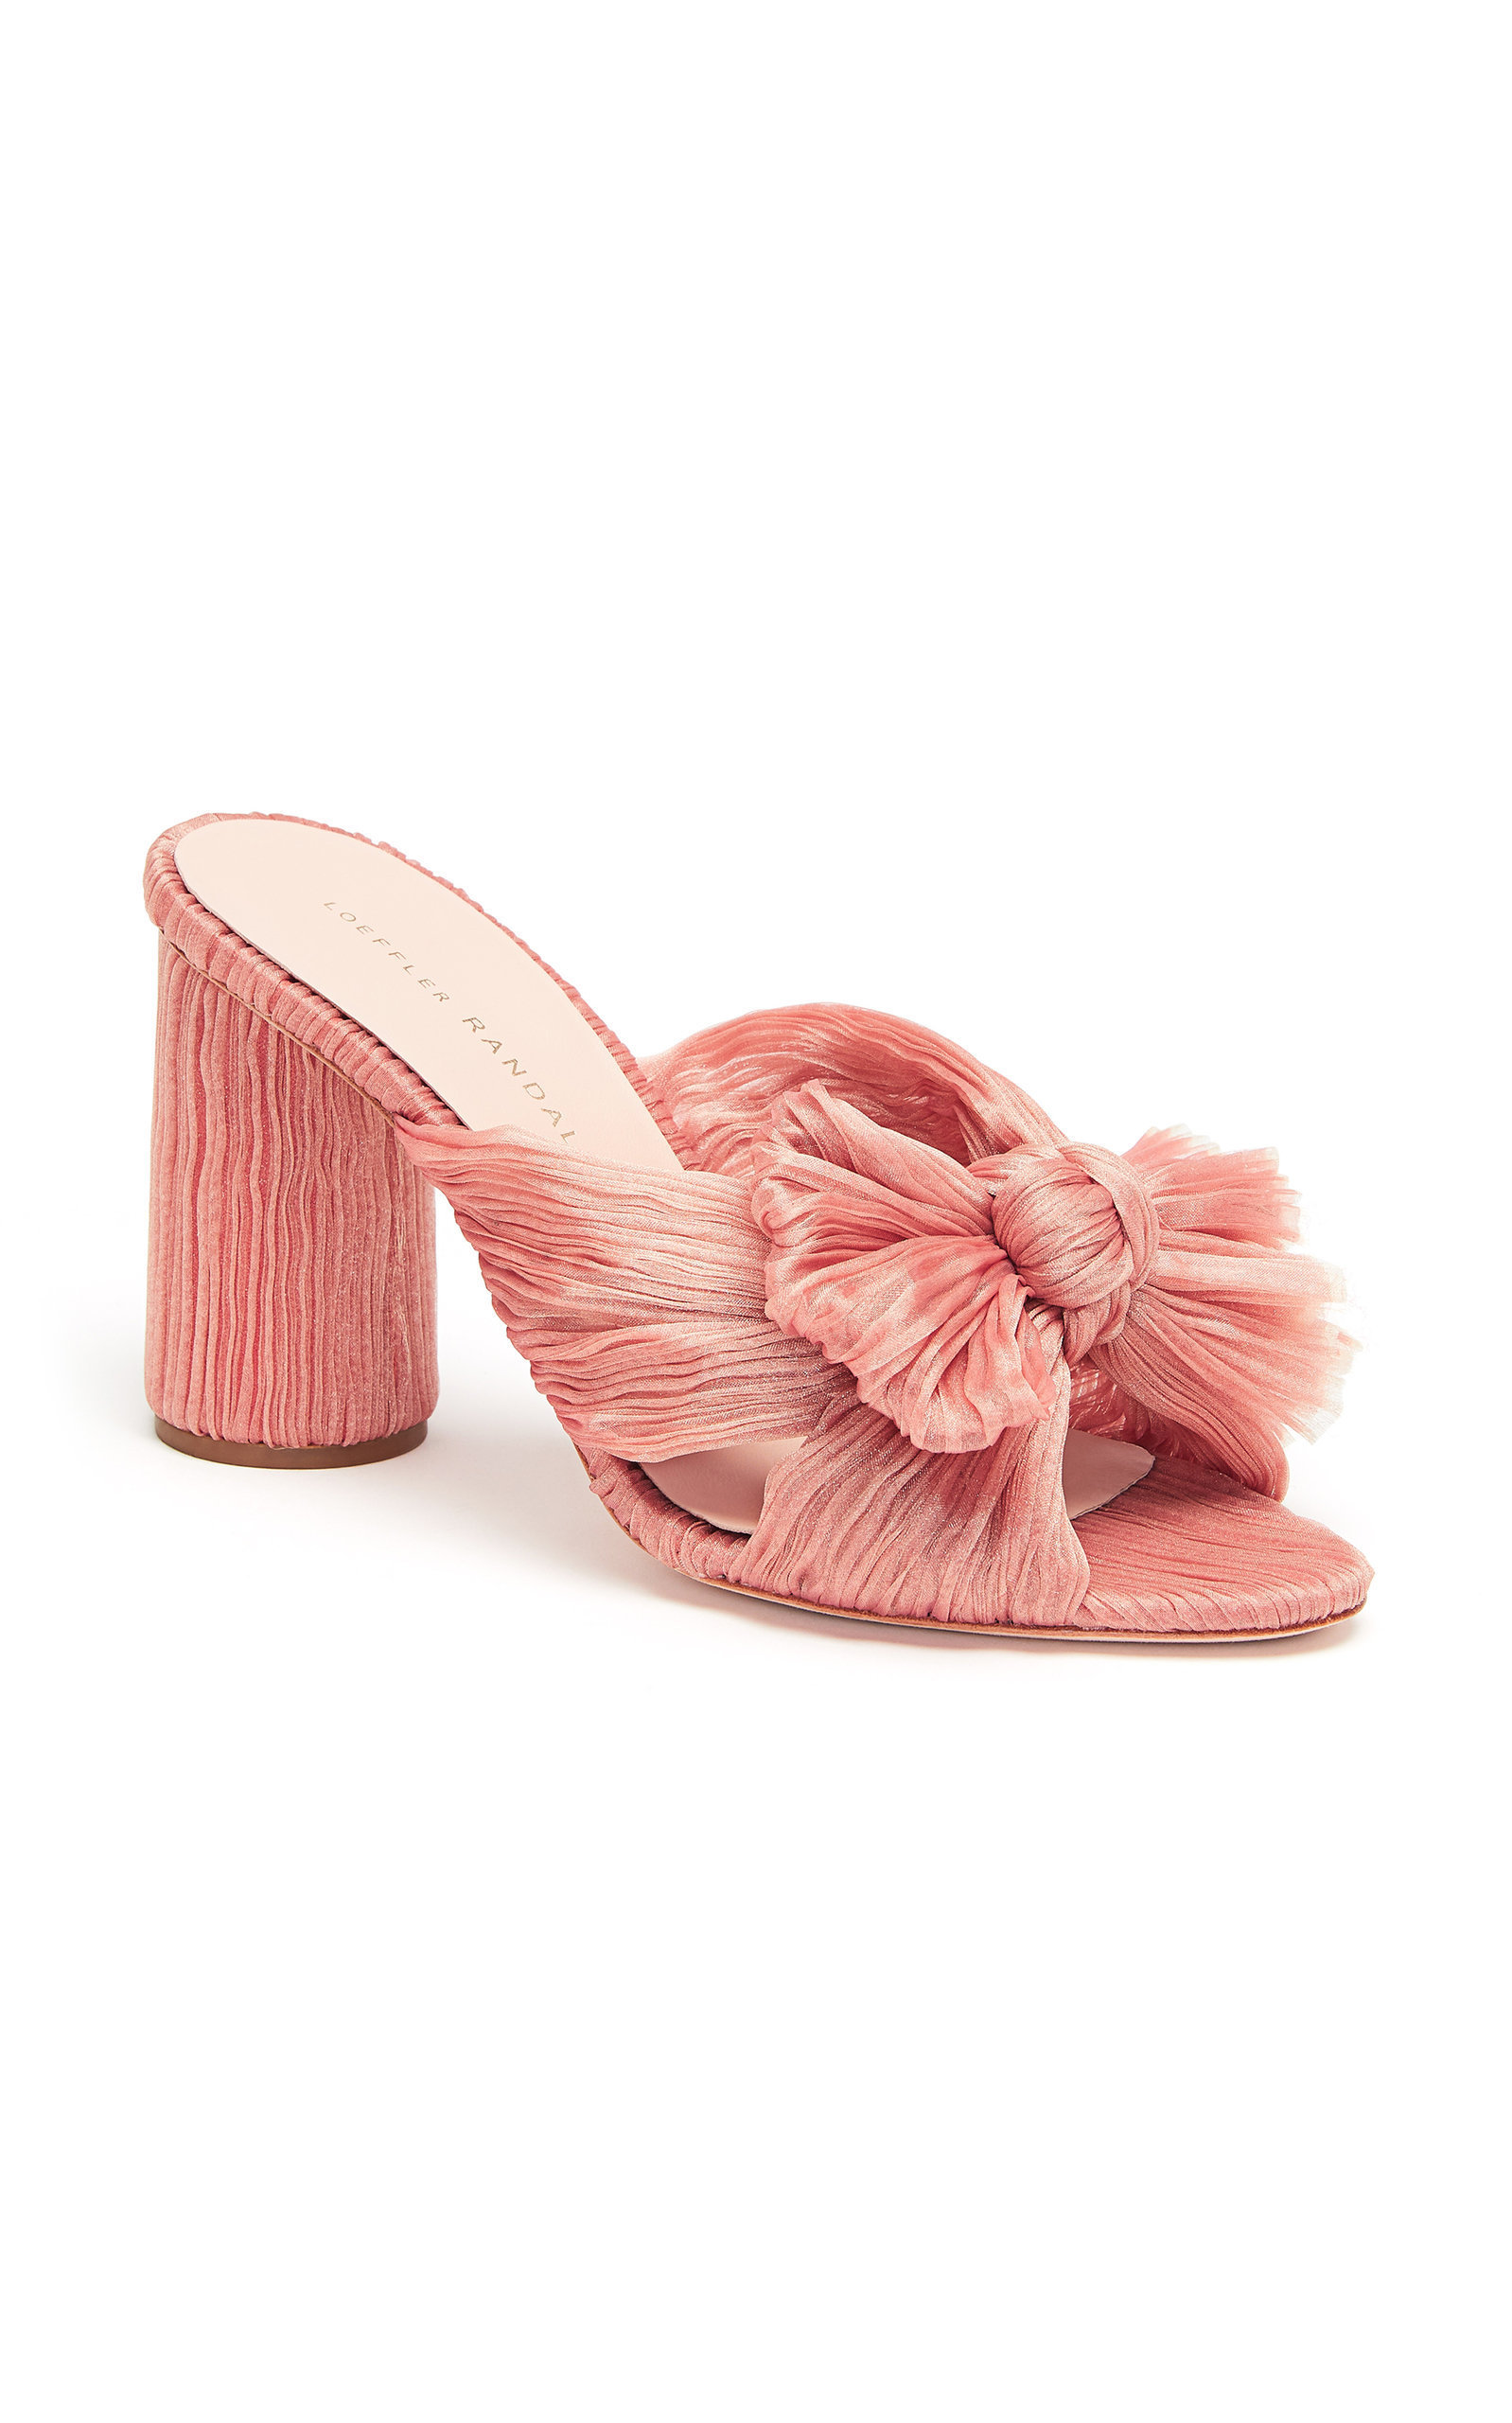 large_loeffler-randall-pink-penny-knotted-plisse-mules.jpg